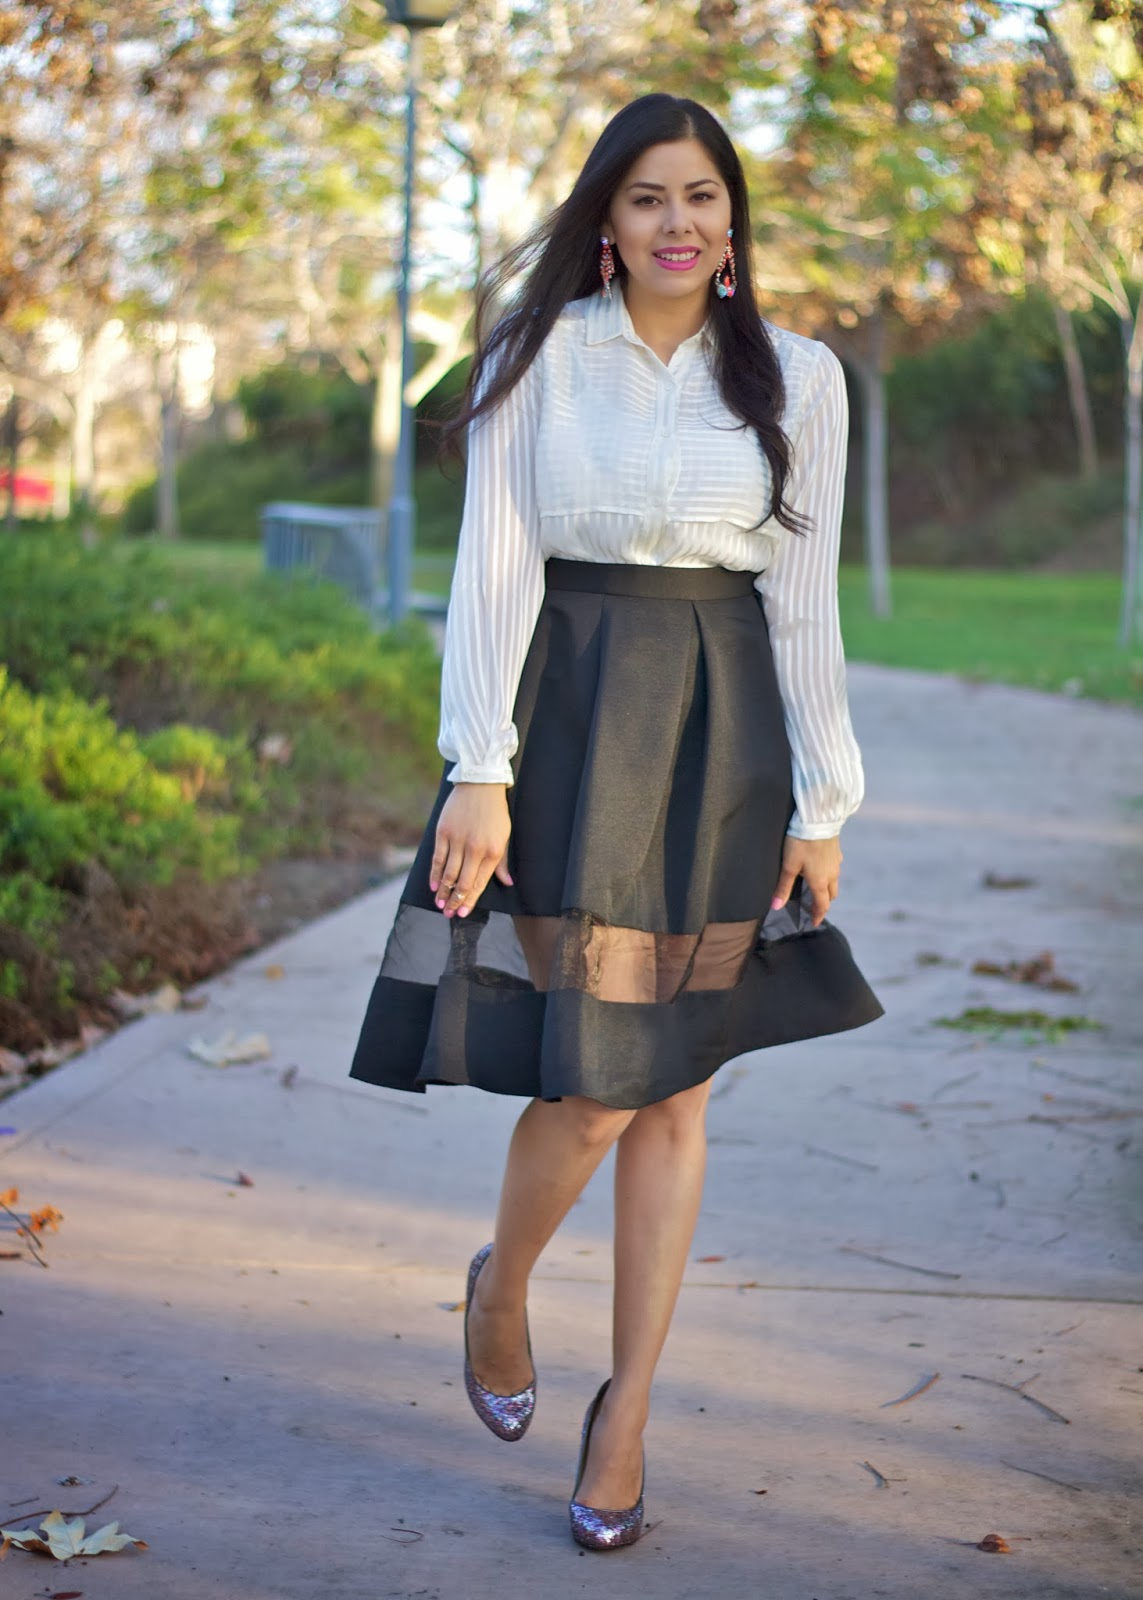 Lil bits of Chic by Paulina Mo Outfit Ideas